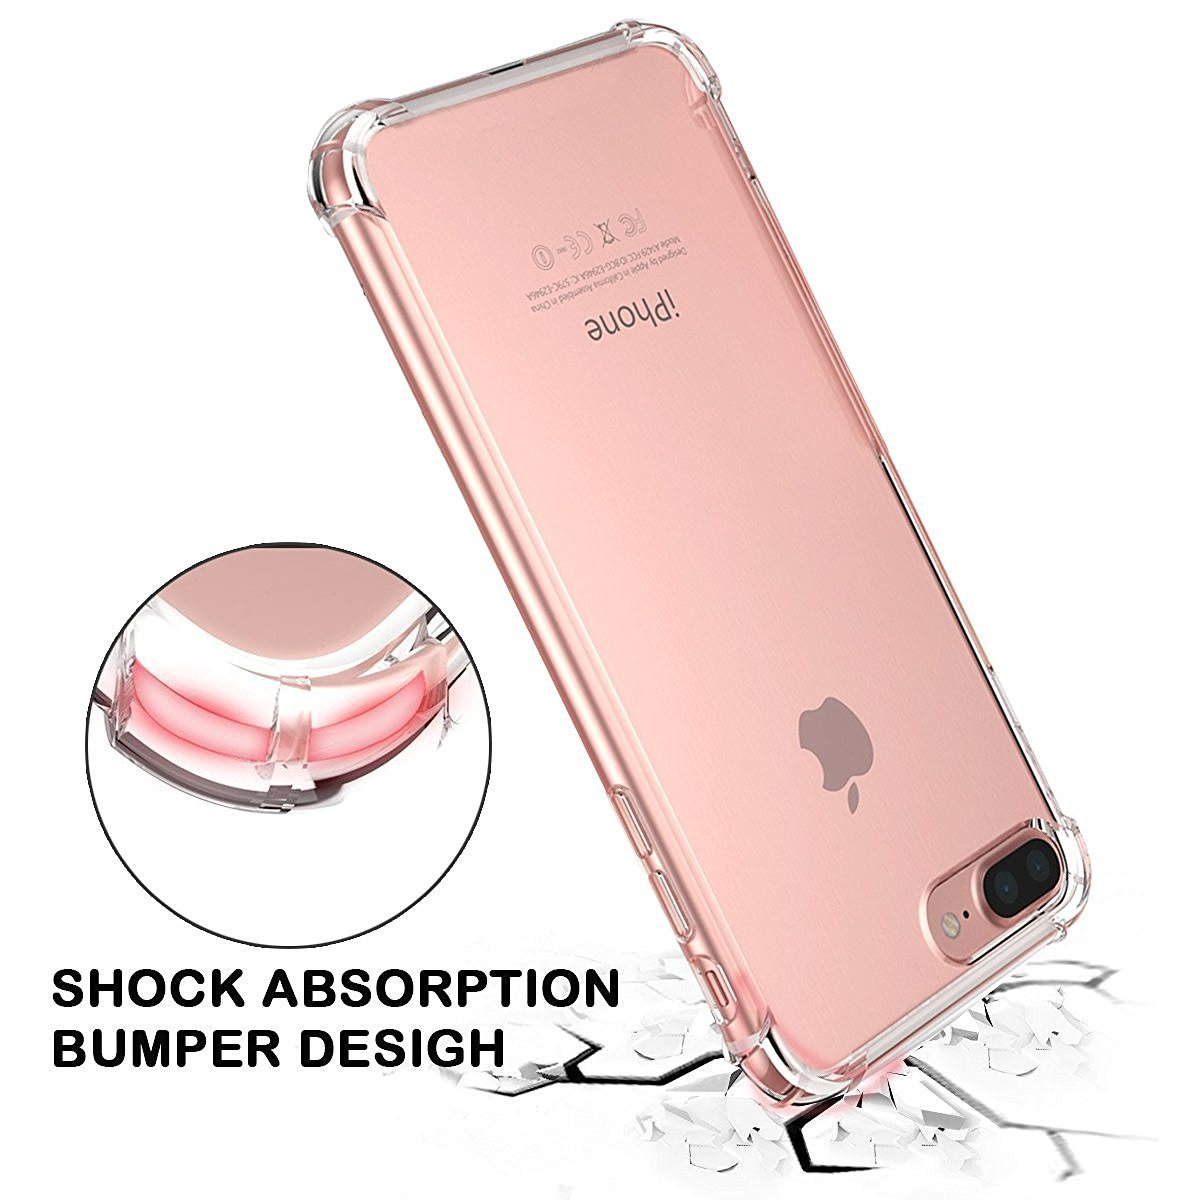 Shock Absorption Flexible TPU Bumper Anti-Scratch Slim Protective Clear Back Cover for iPhone 7 Plus